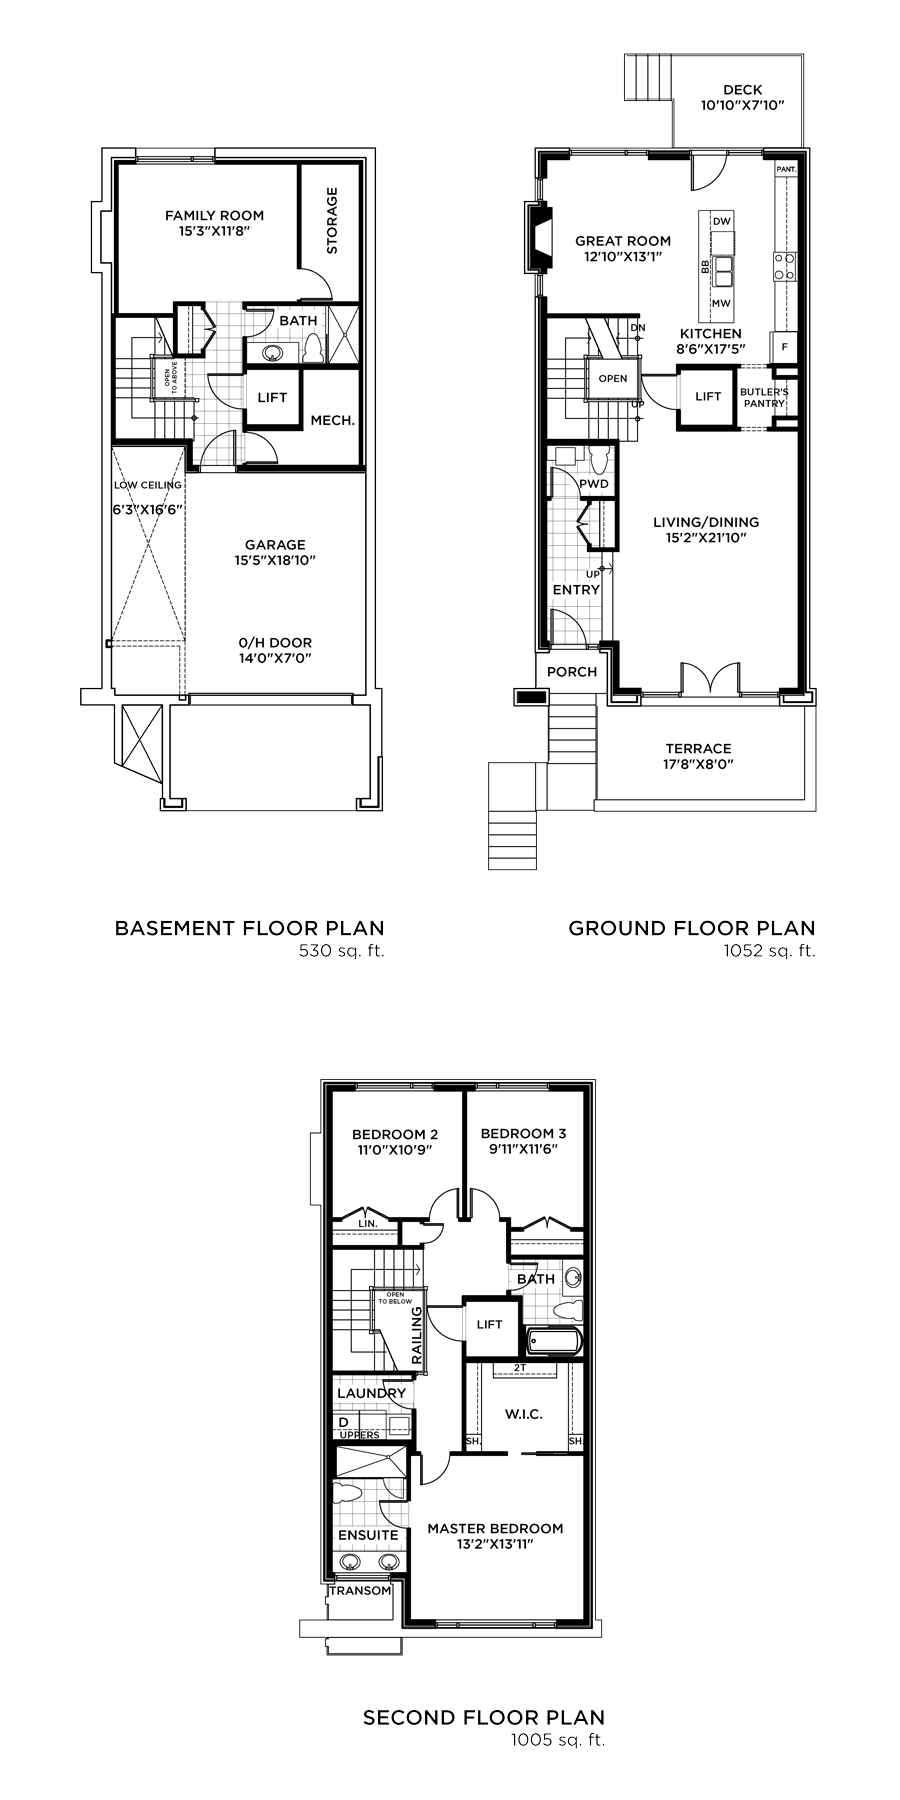 The Finlay furthermore Dream Home Floor Plans moreover 1400sqft 1599sqft Manufactured Homes additionally 24 X 60 Mobile Home Floor Plans in addition Tnr Model 298598. on mobile home renderings